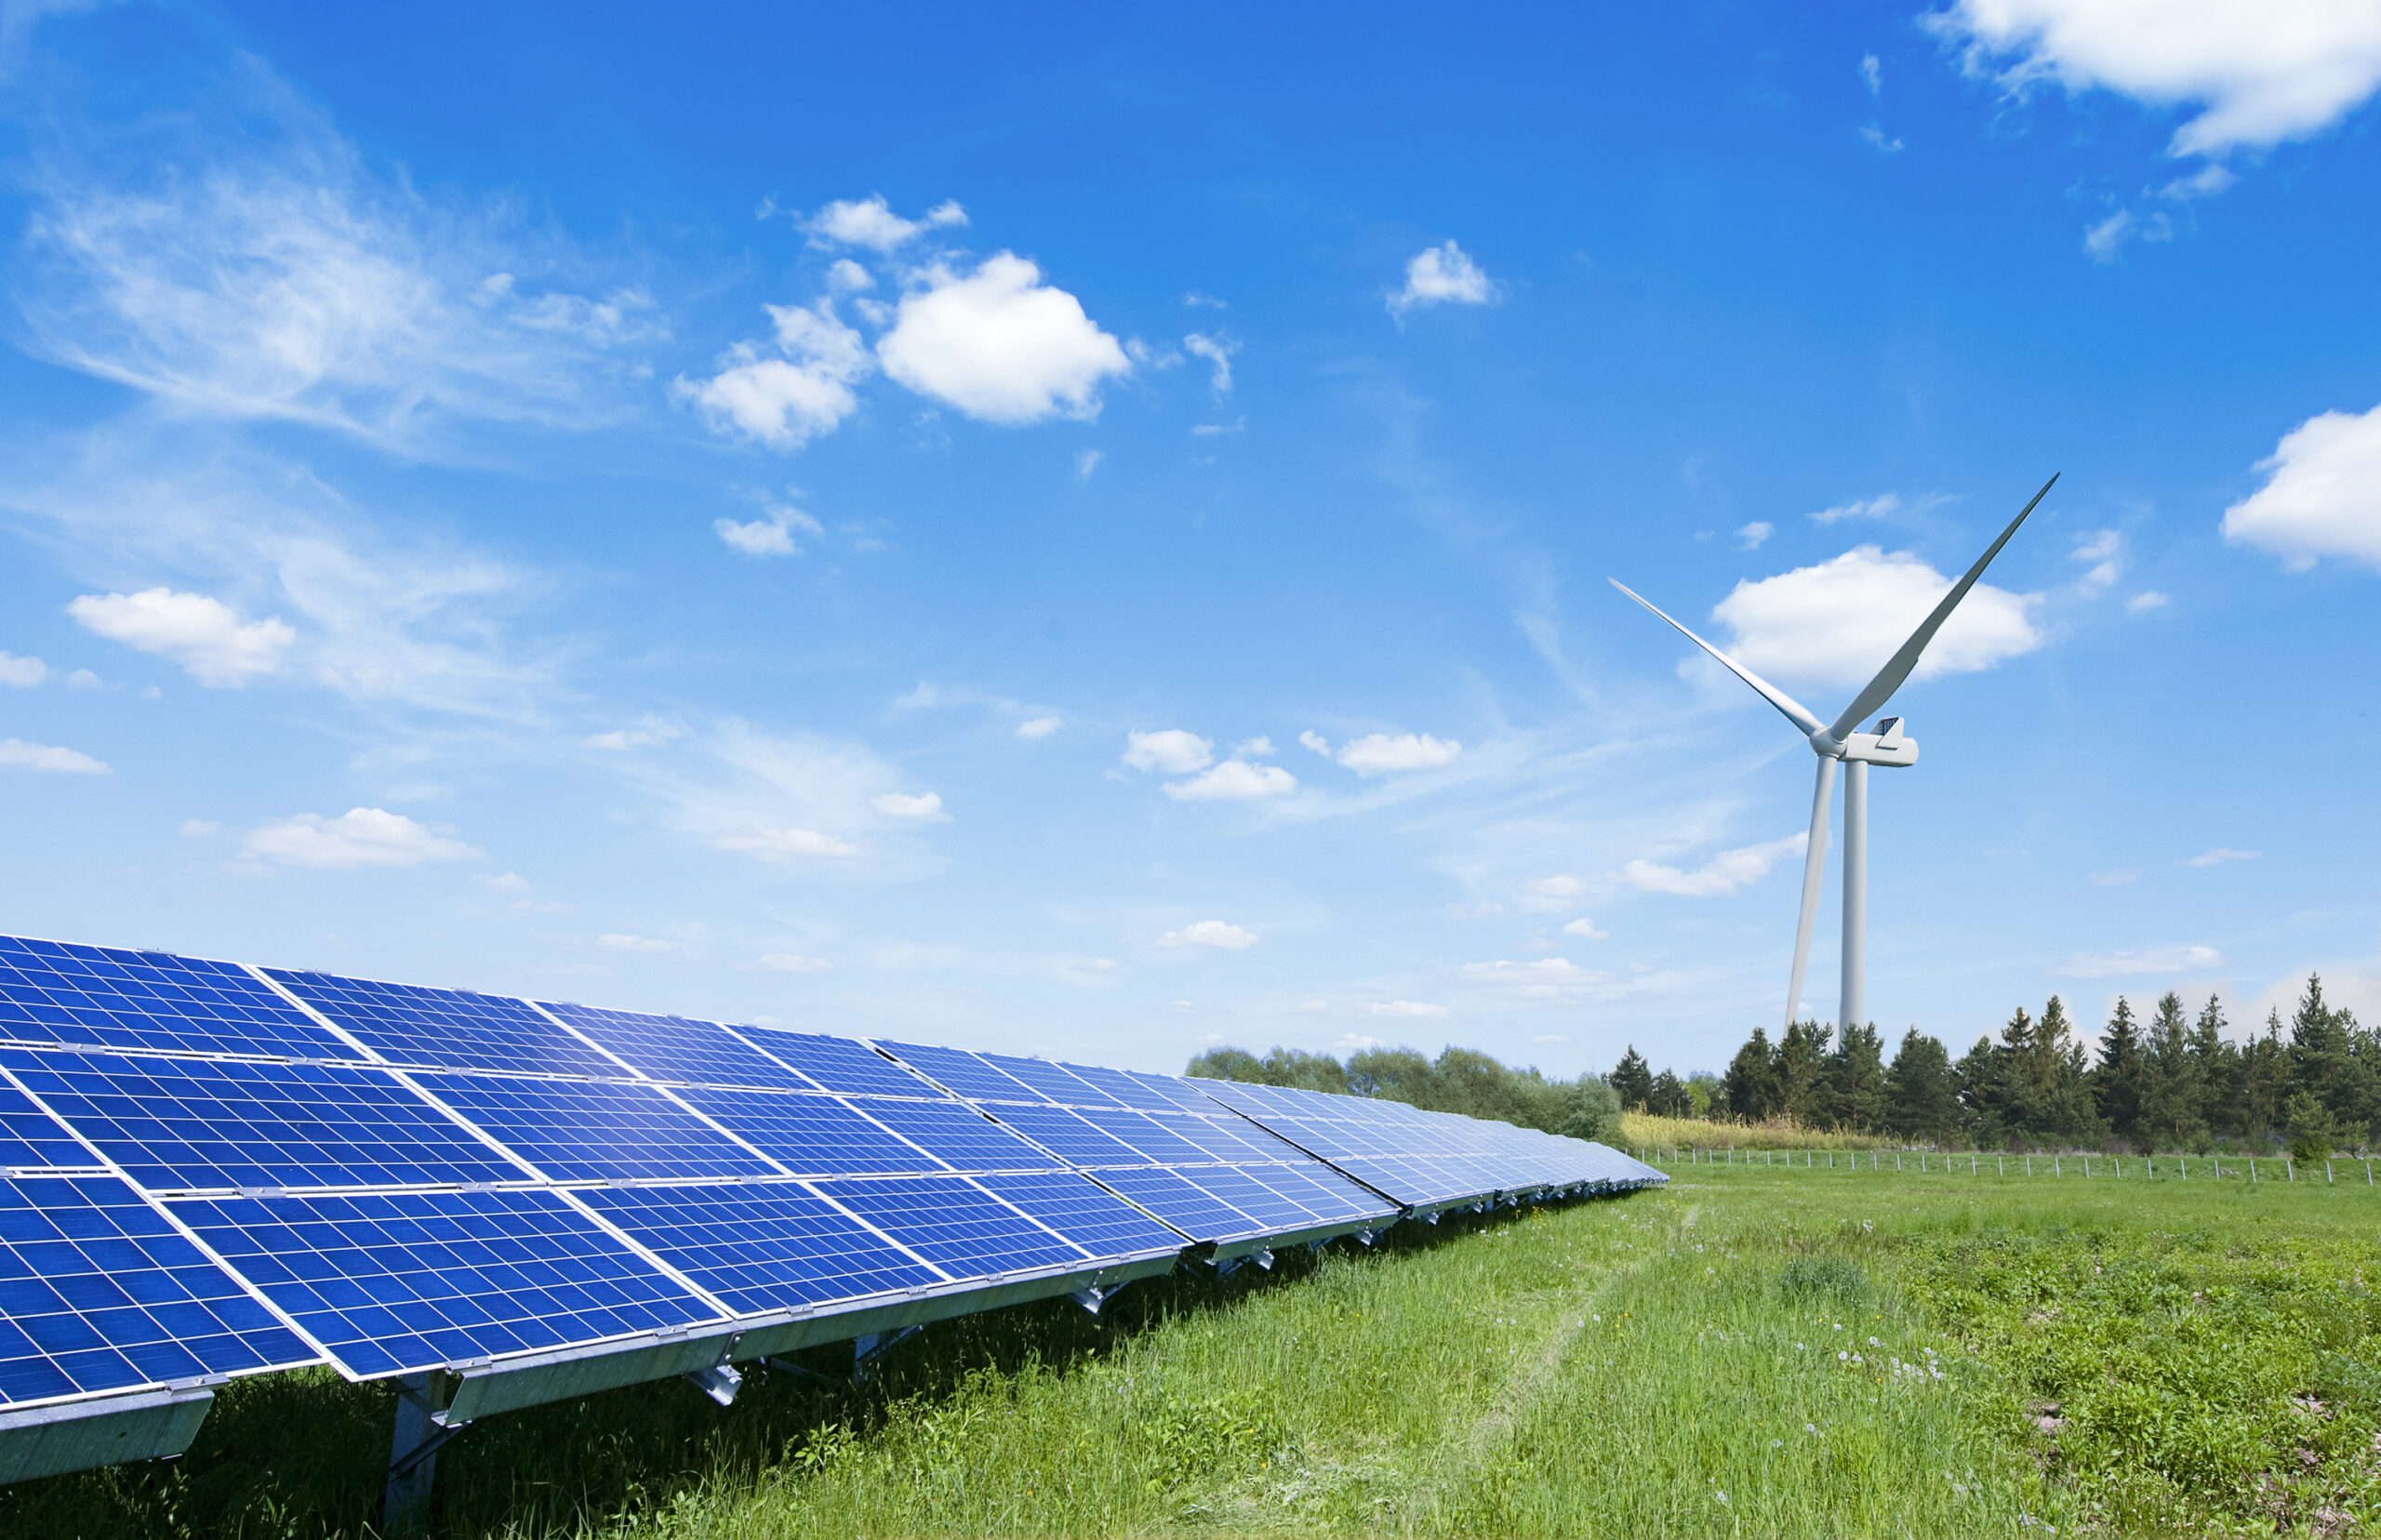 GG4-solar-panel-with-windmill-Banner-to-replace-Windmill-only-picture-banner--scaled.jpg